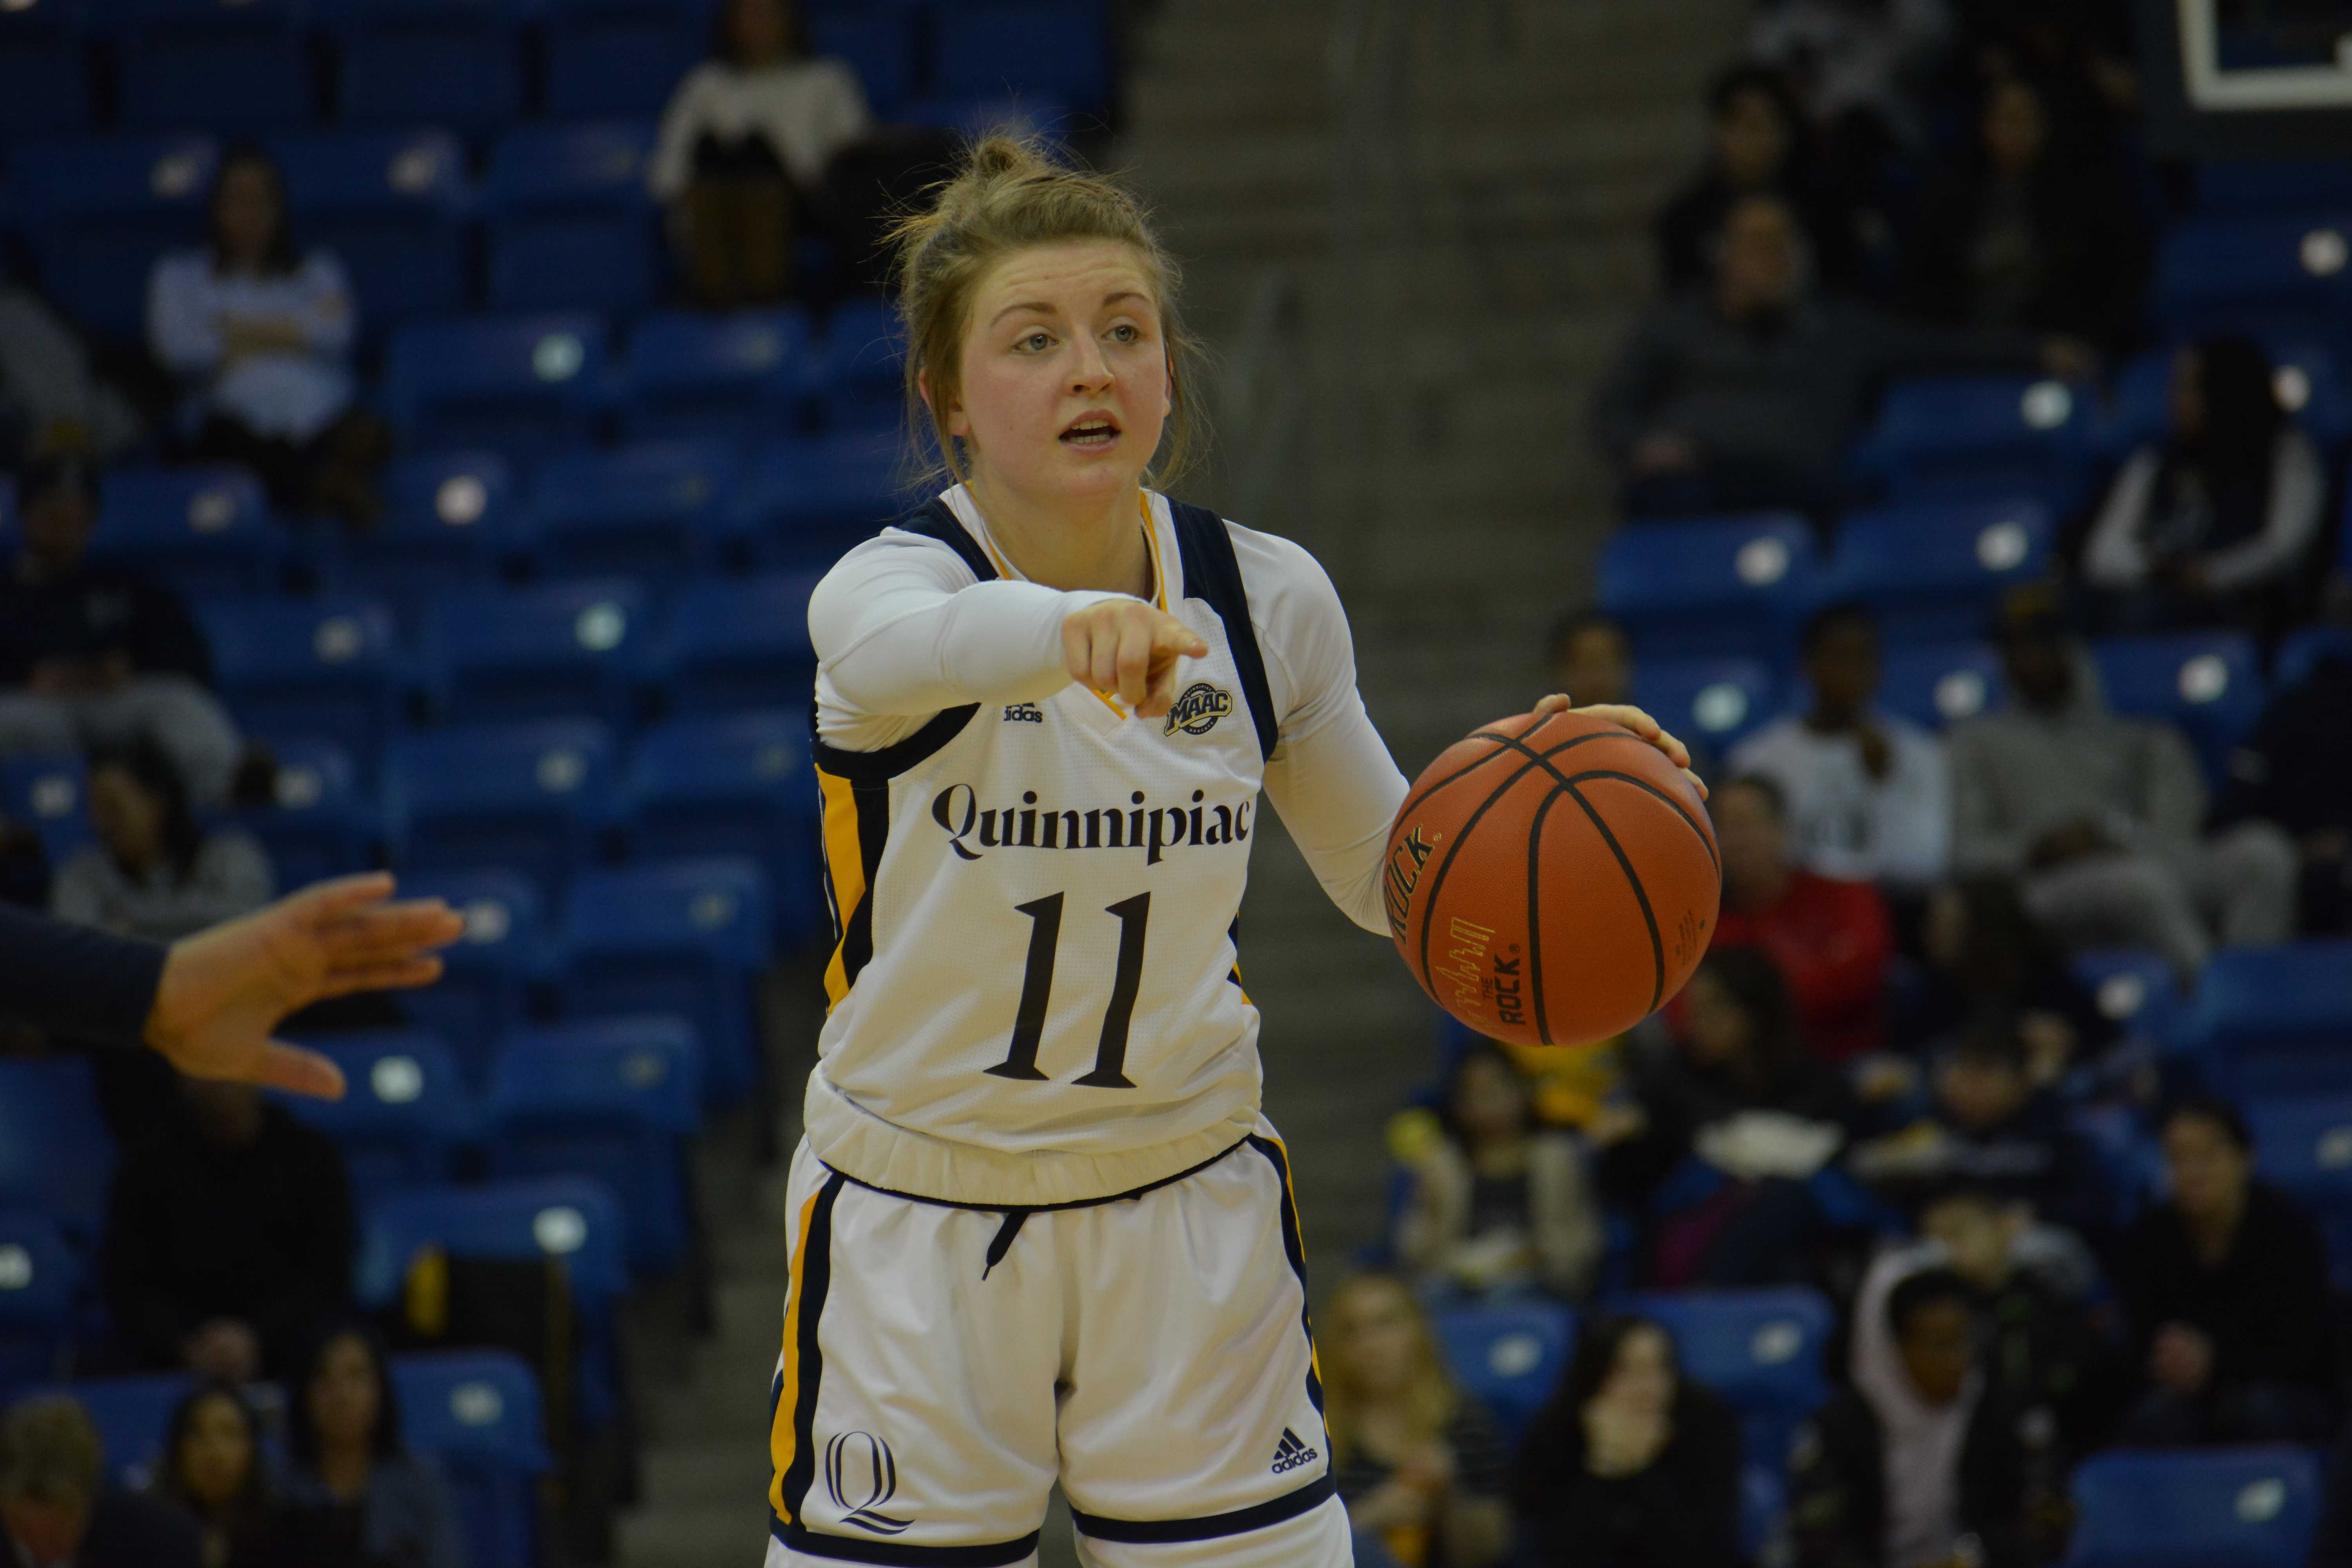 Quinnipiac women's basketball celebrates Senior Day with a win over Canisius